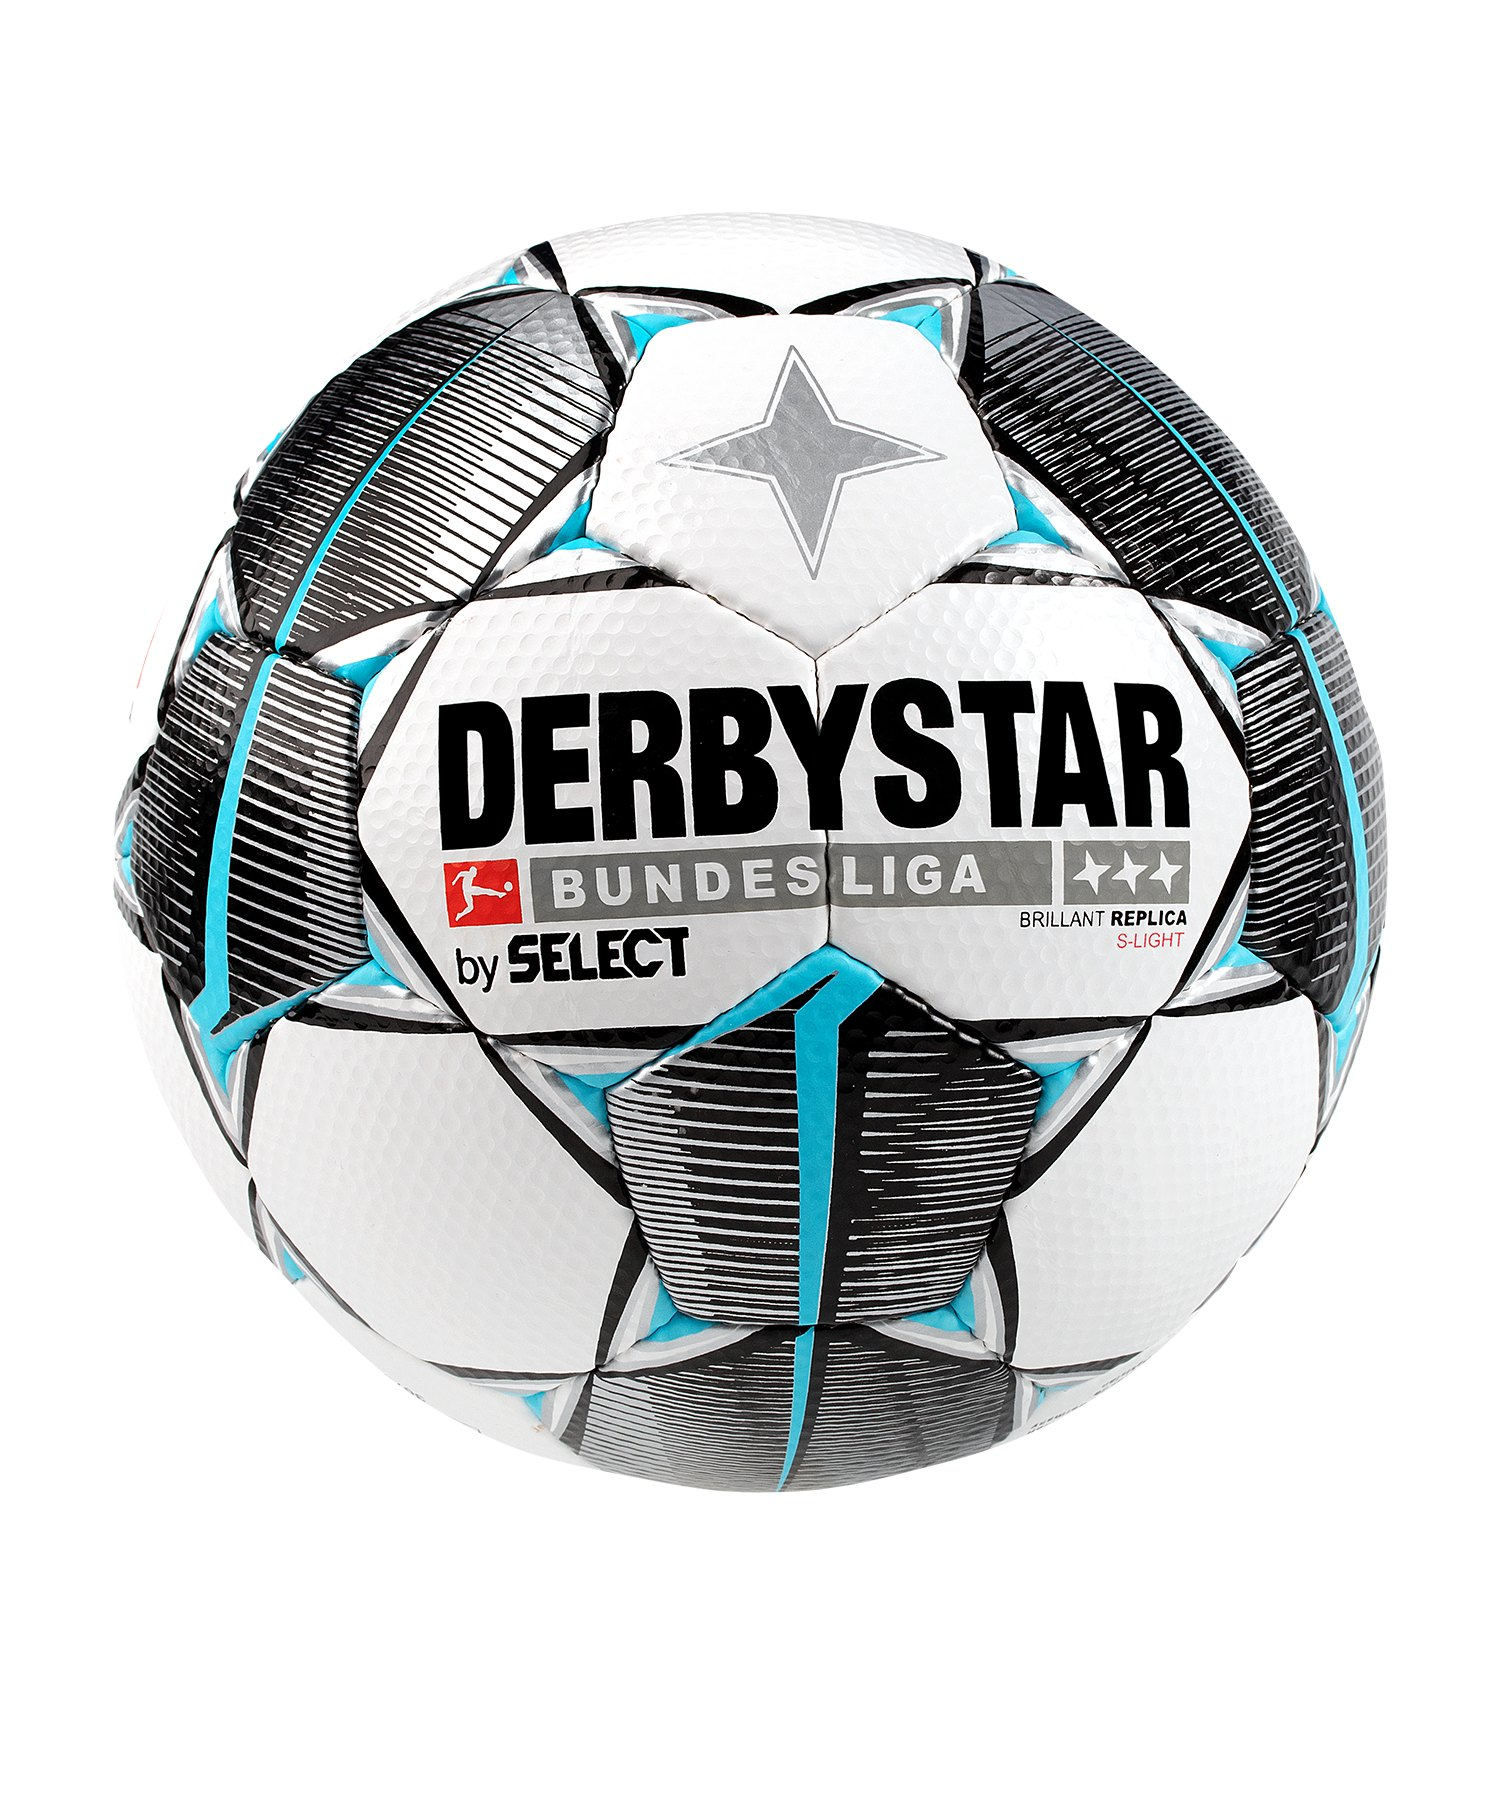 Derbystar Bundesliga Brillant Replica S-Light 290gFussball Weiss F019 - weiss